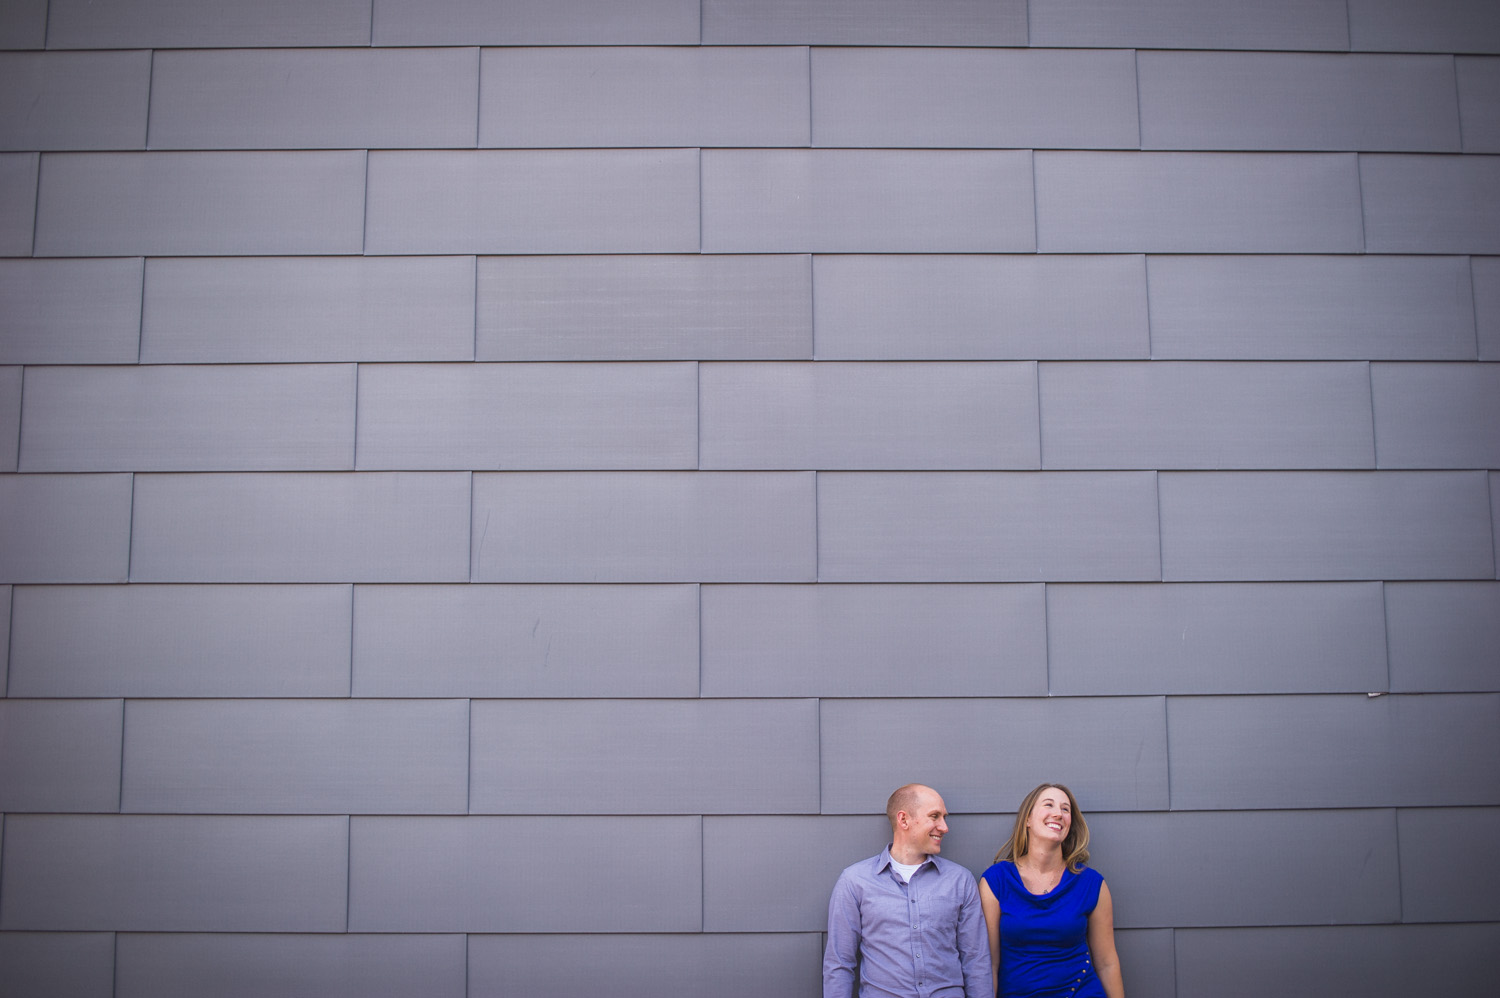 brandywine-park-city-of-wilmington-engagement-session-17.jpg